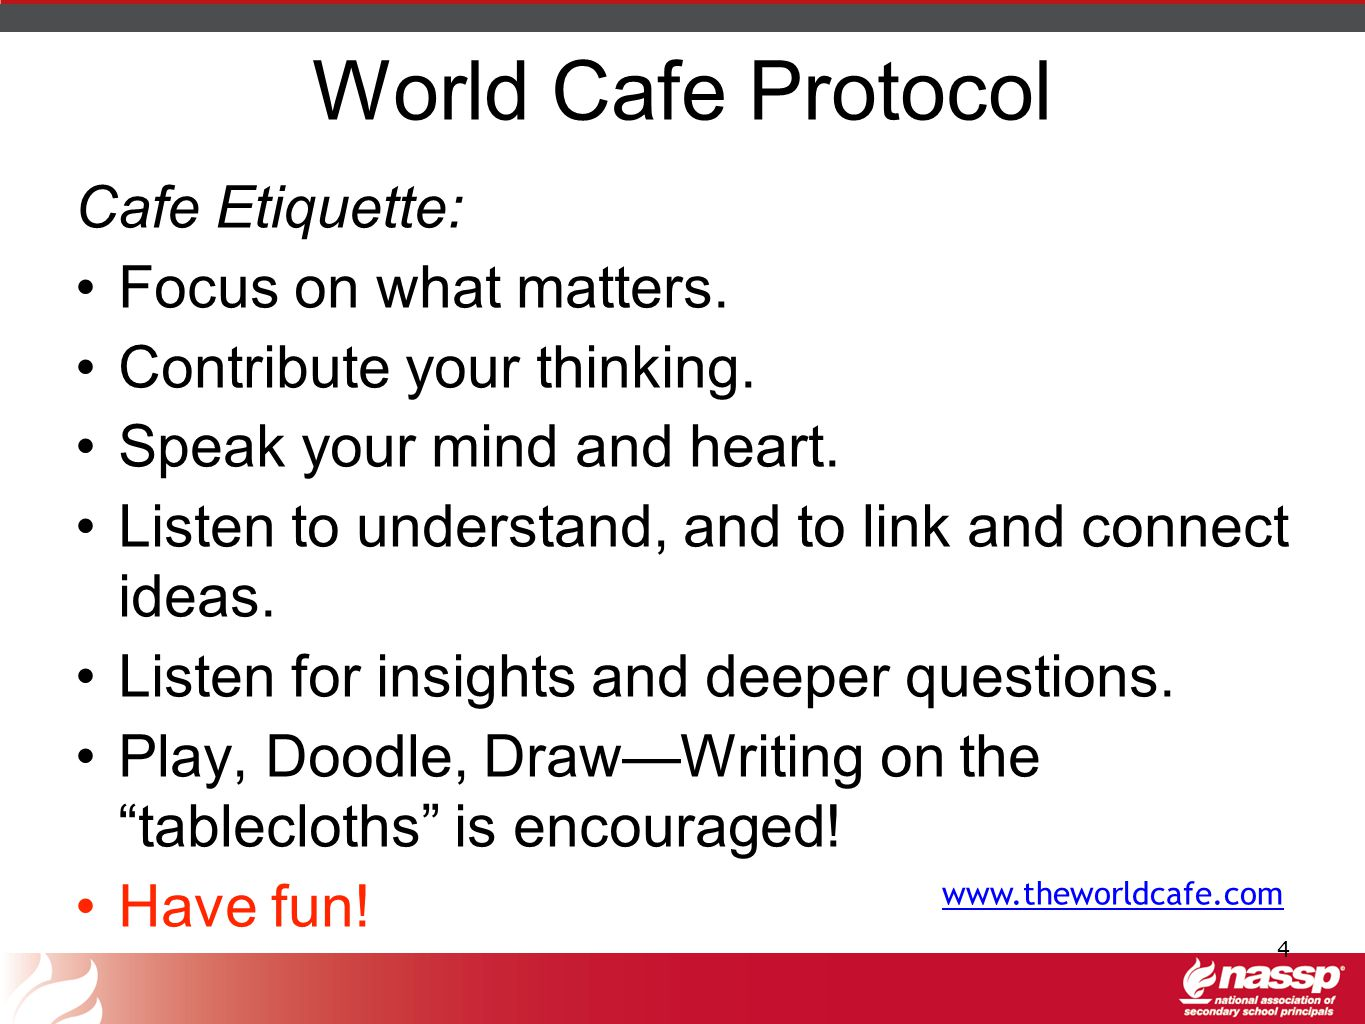 World Cafe Protocol Cafe Etiquette: Focus on what matters.